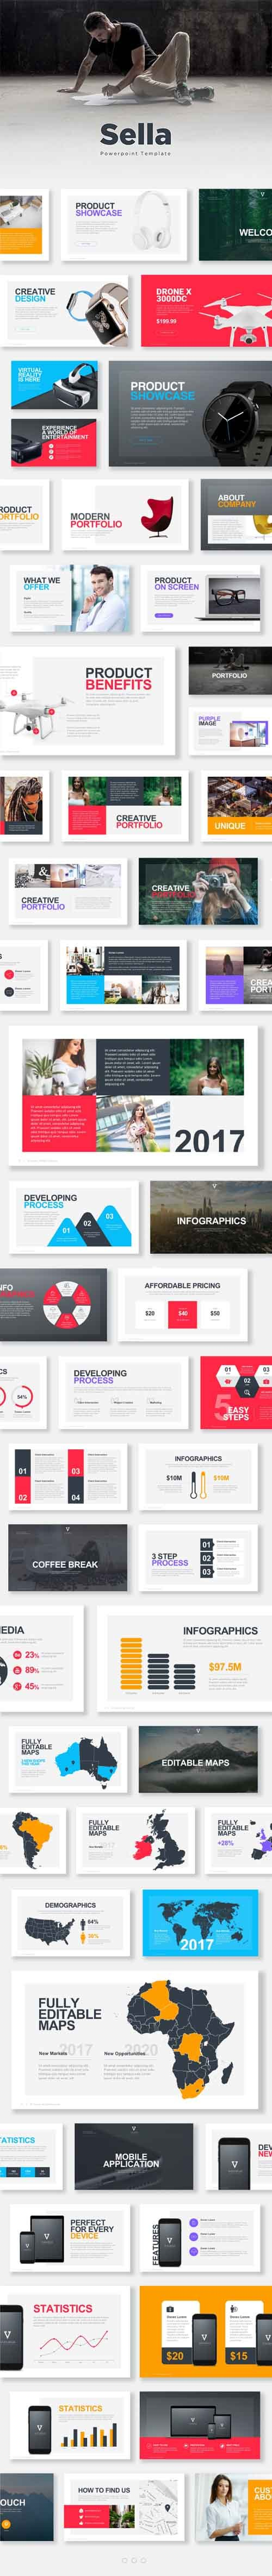 GR - Sella Powerpoint Template 18036459